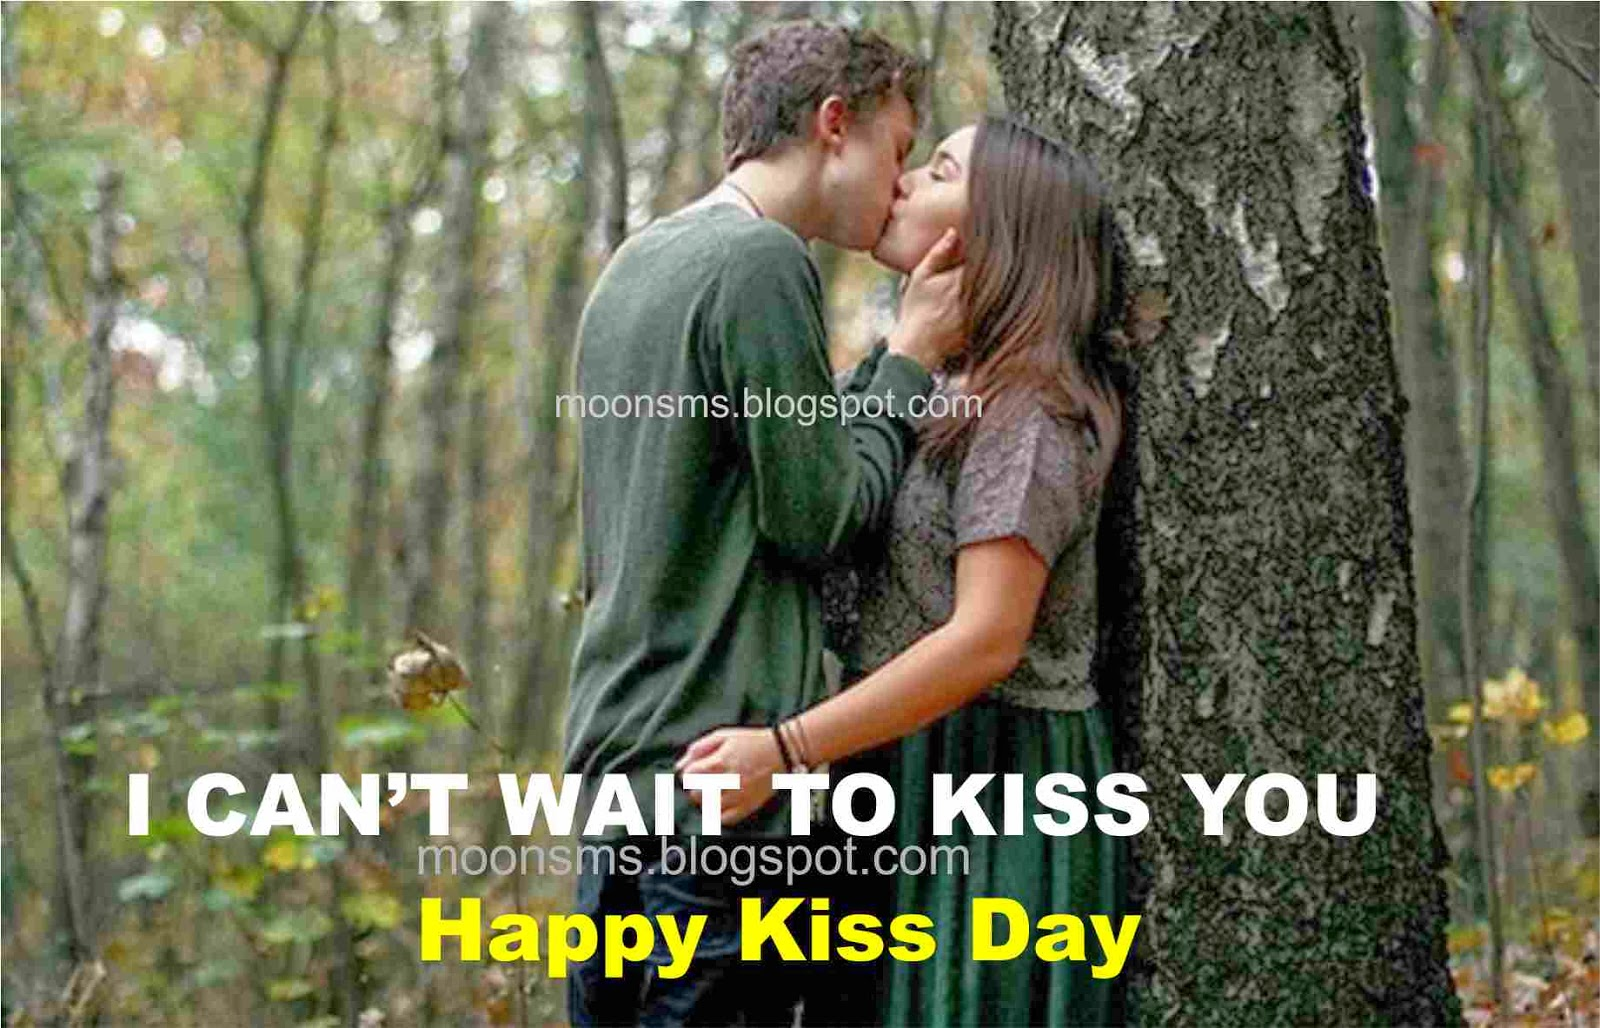 Kiss Love Quotes In Hindi : Kiss sms text message wishes quotes jokes Greetings in English Hindi ...